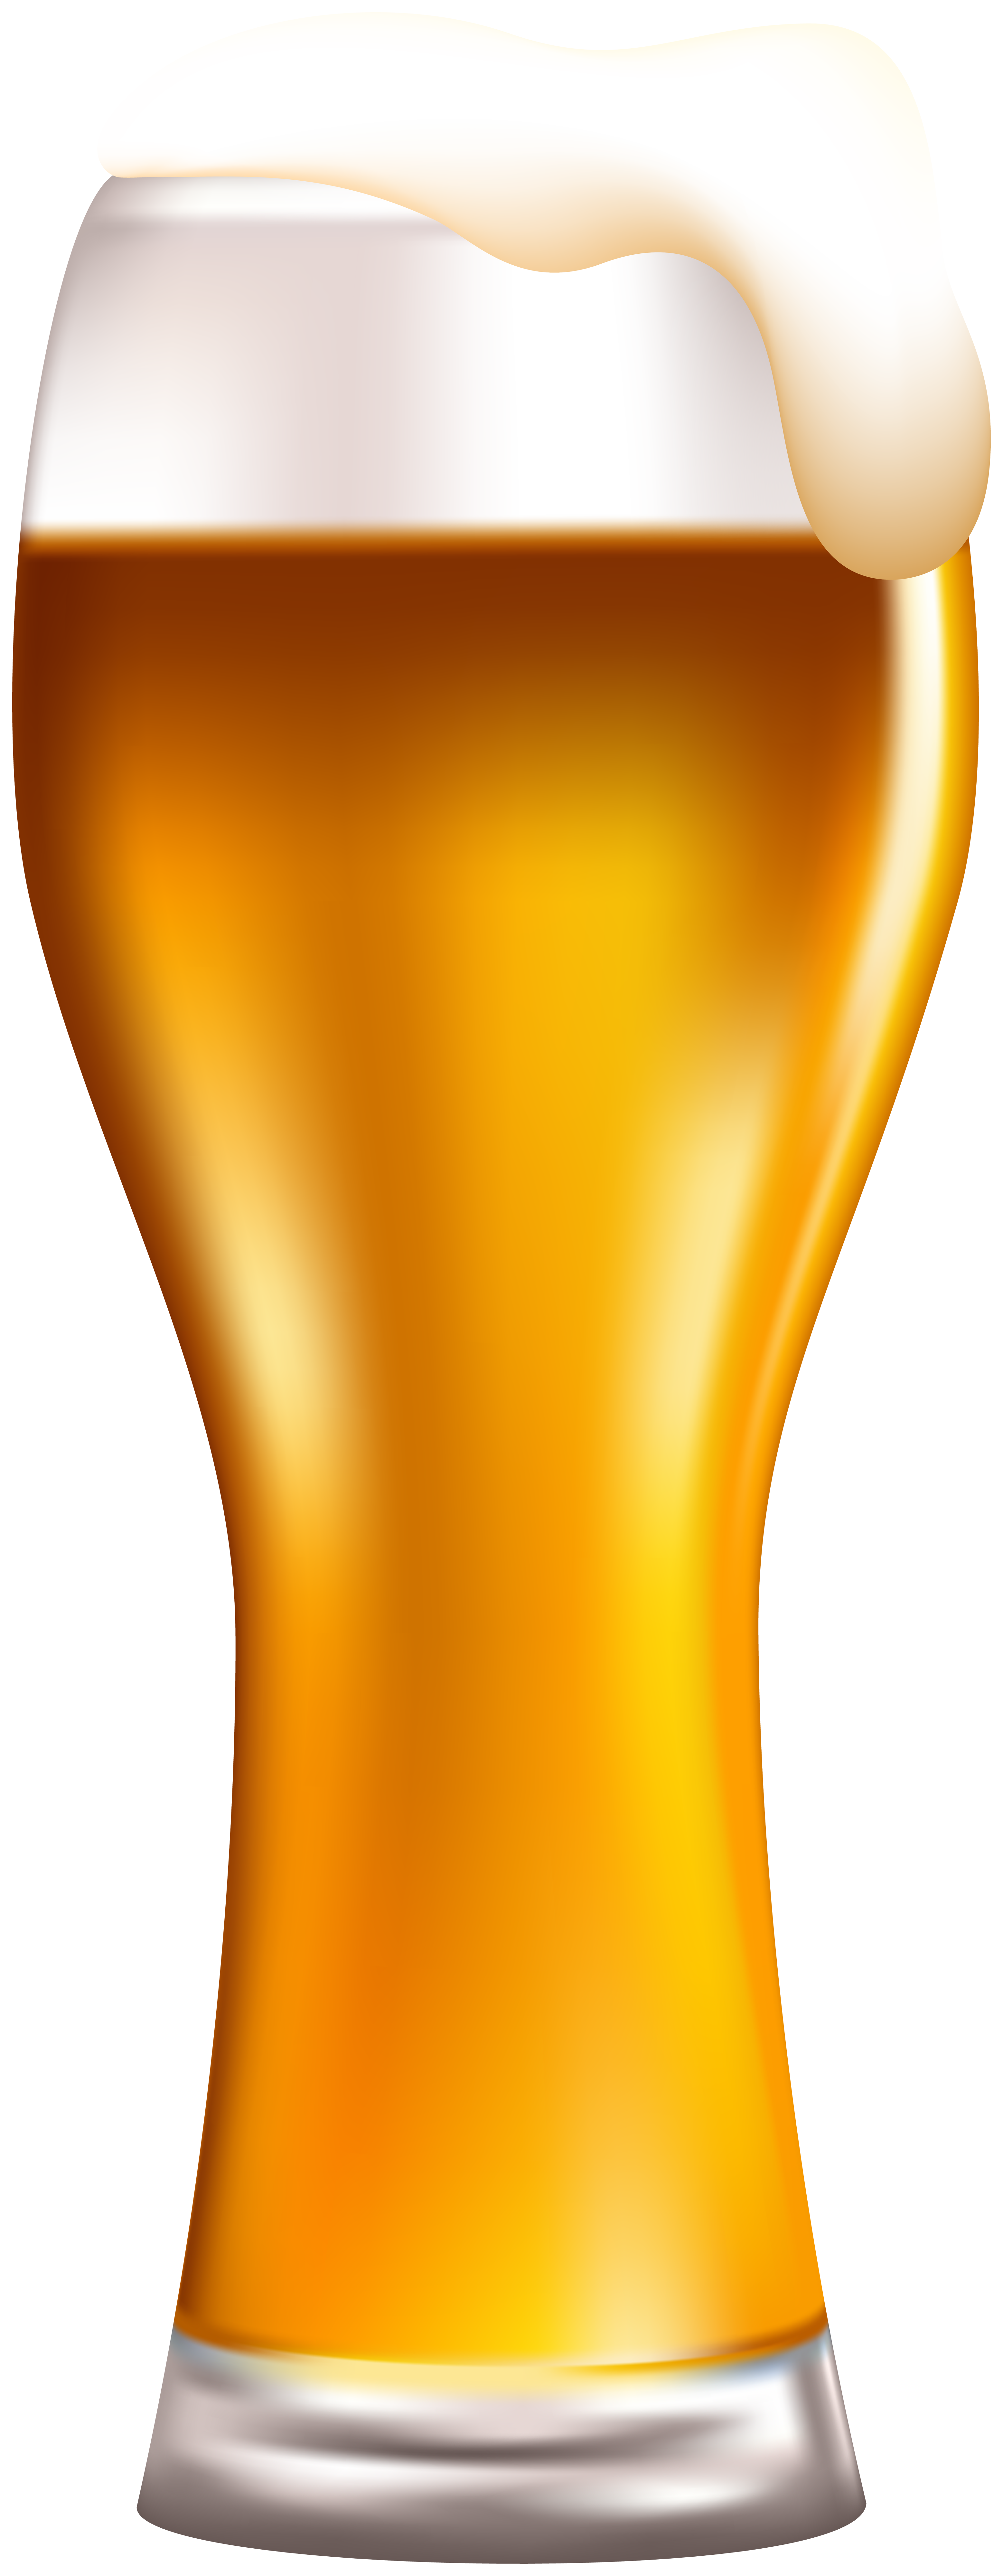 Transparent beer froth. Glass with foam png